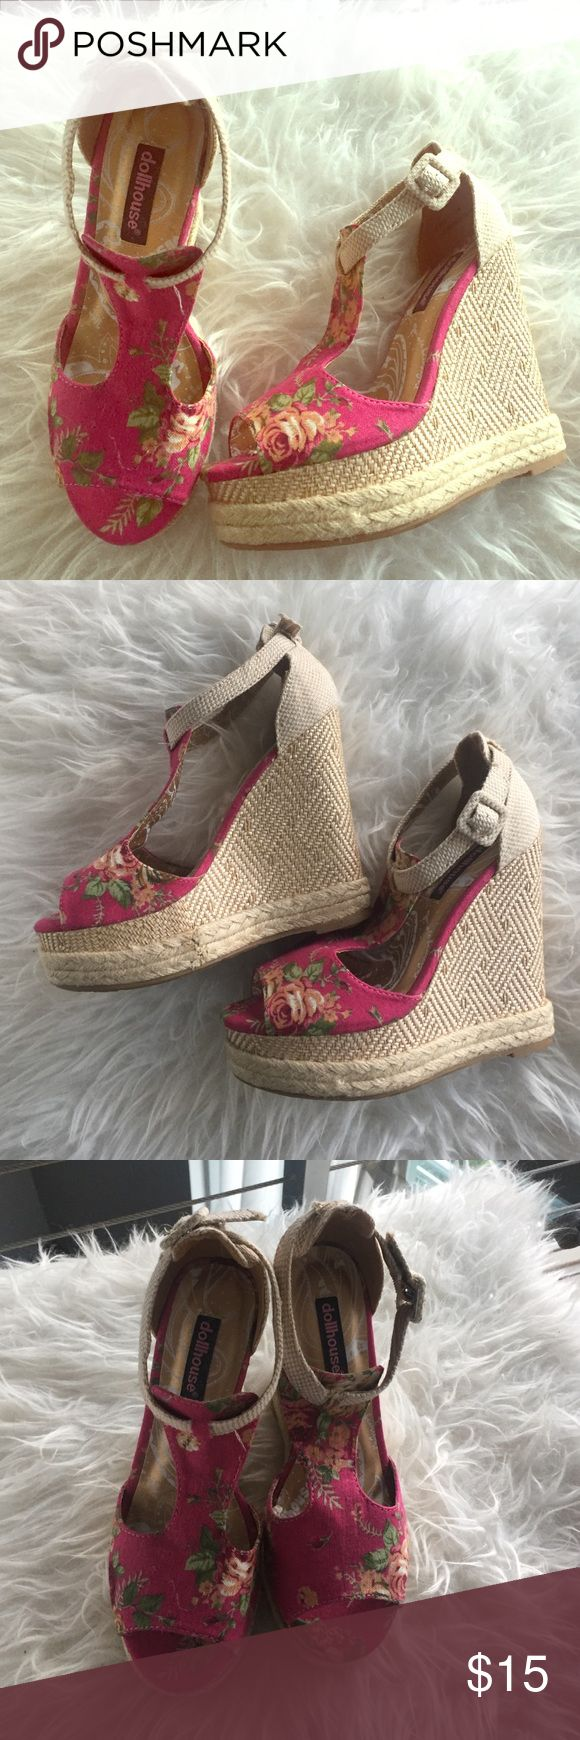 Dollhouse Floral Espadrille Wedges Dollhouse Floral Espadrille Wedges! Never Worn! Bought at a boutique in Miami, FL and their home has been my closet ever since! Do not come with original box but in brand new condition! Perfect for summer  Dollhouse Shoes Espadrilles